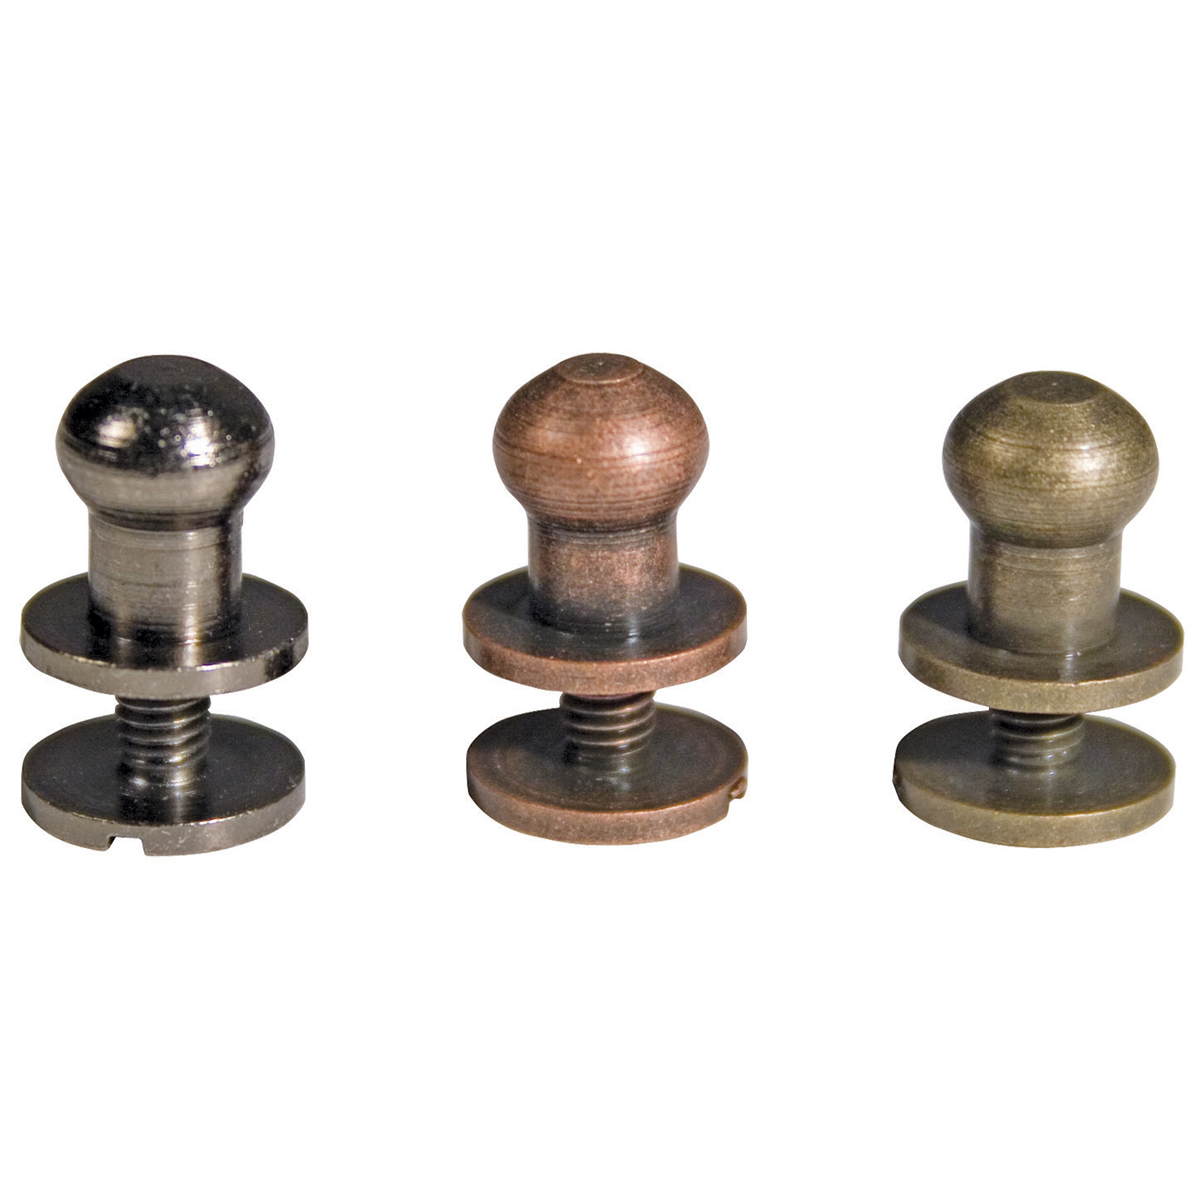 Idea-Ology 2-Part .375\u0022 Hitch Fasteners-12/Pkg - 4ea Antique Nickel/Brass/Copper